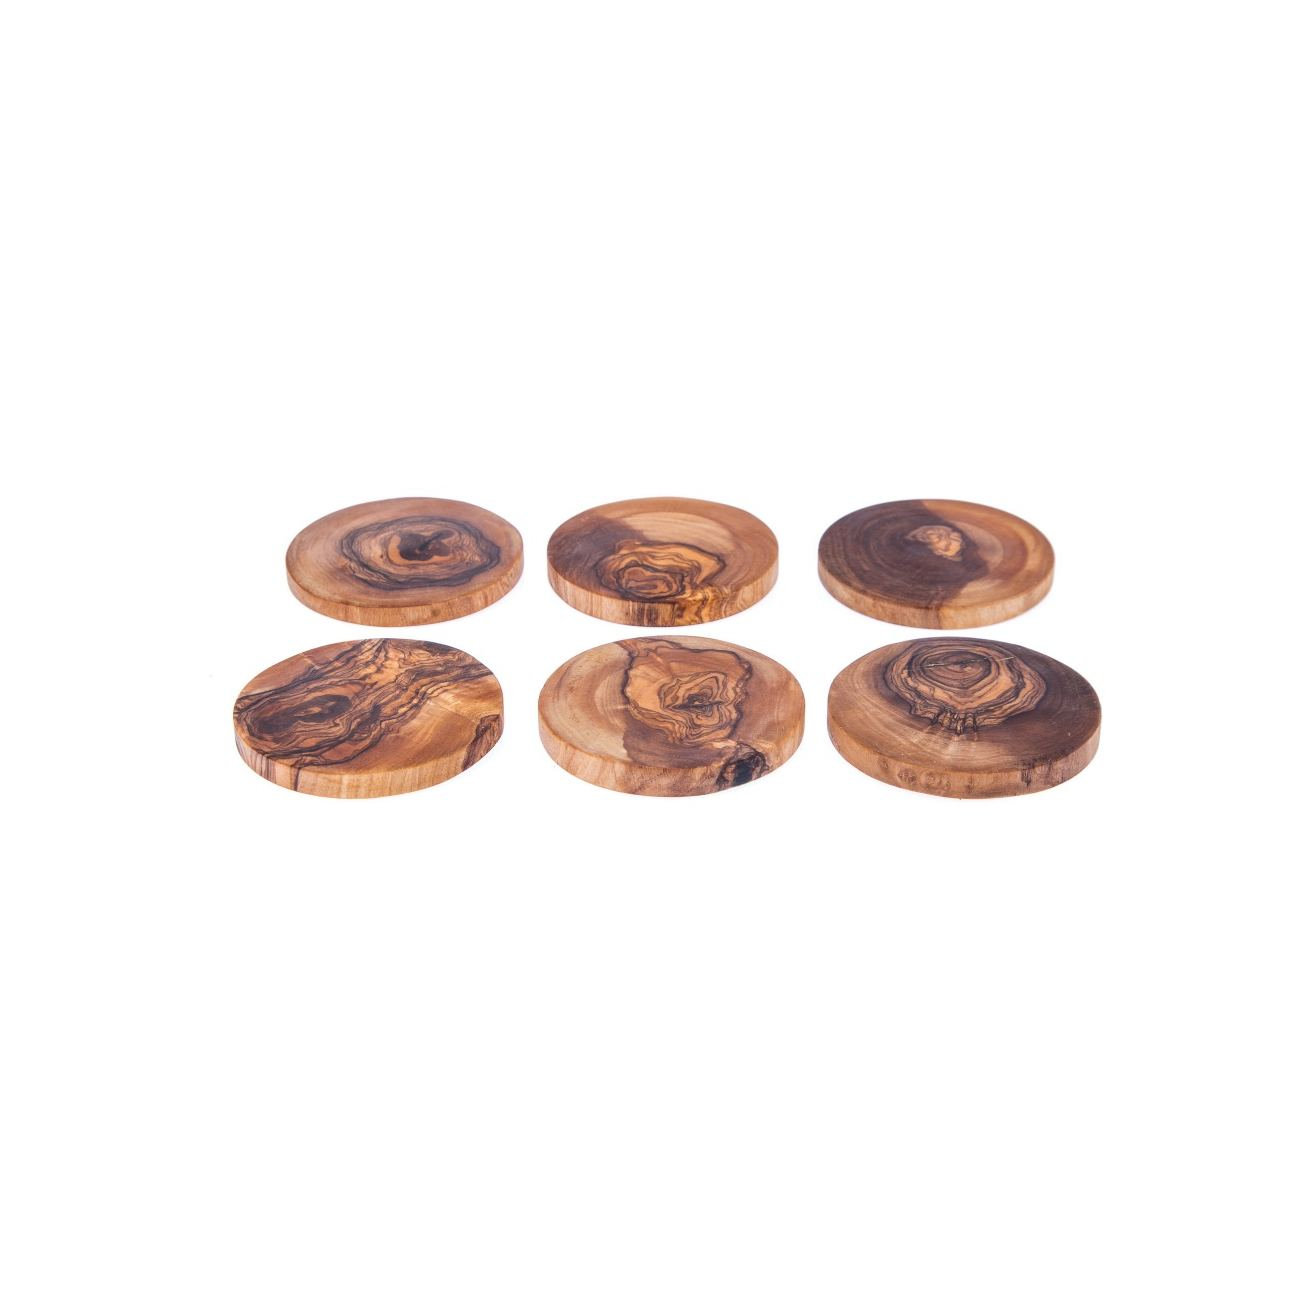 Olive Wood Drink Coasters Set of 6 - Handmade Round Coasters with ...